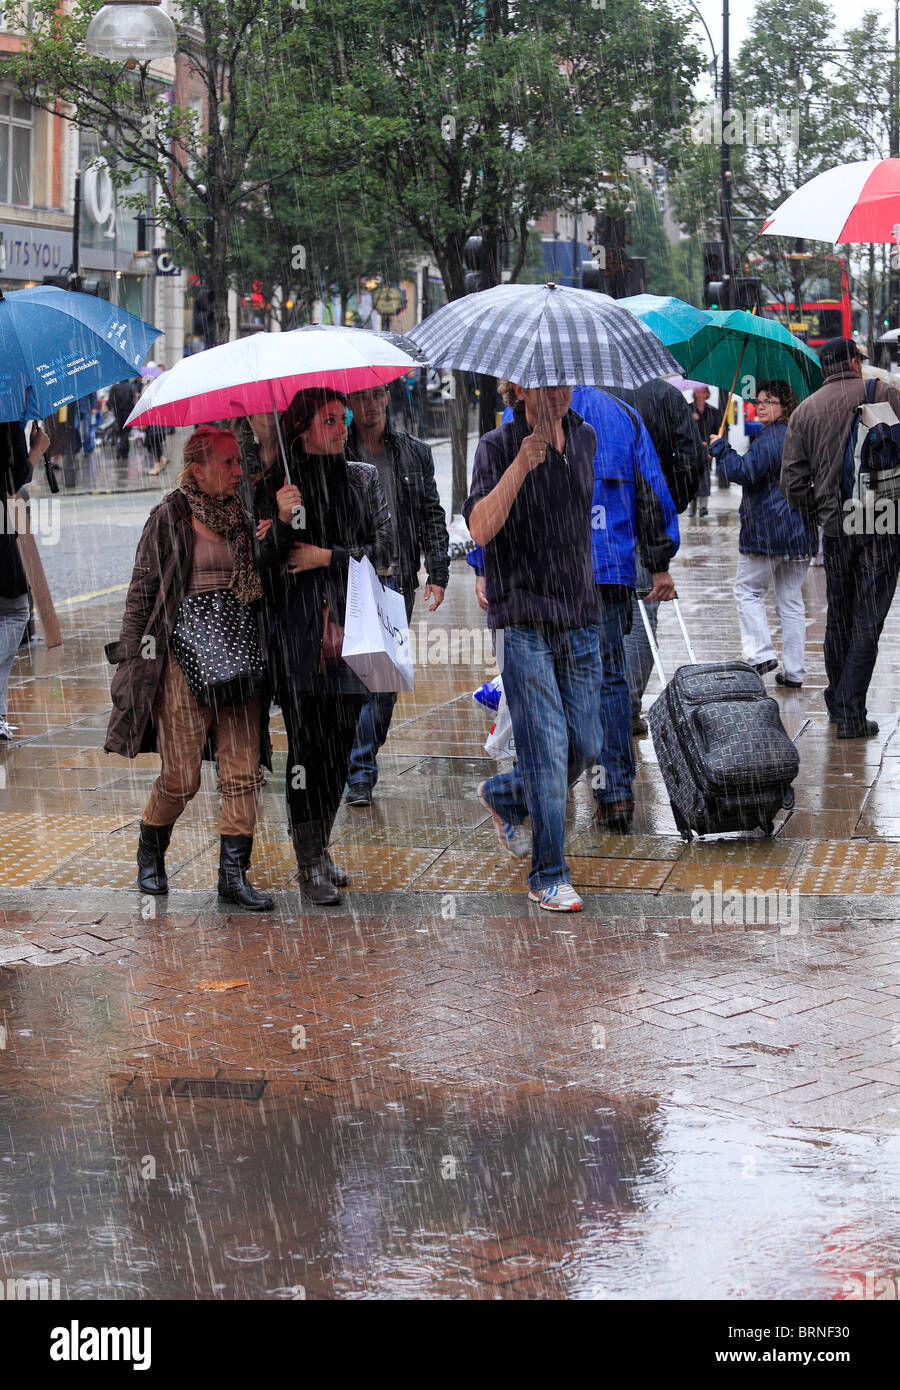 Street Shoppers on a cold and rainy day. - Stock Image